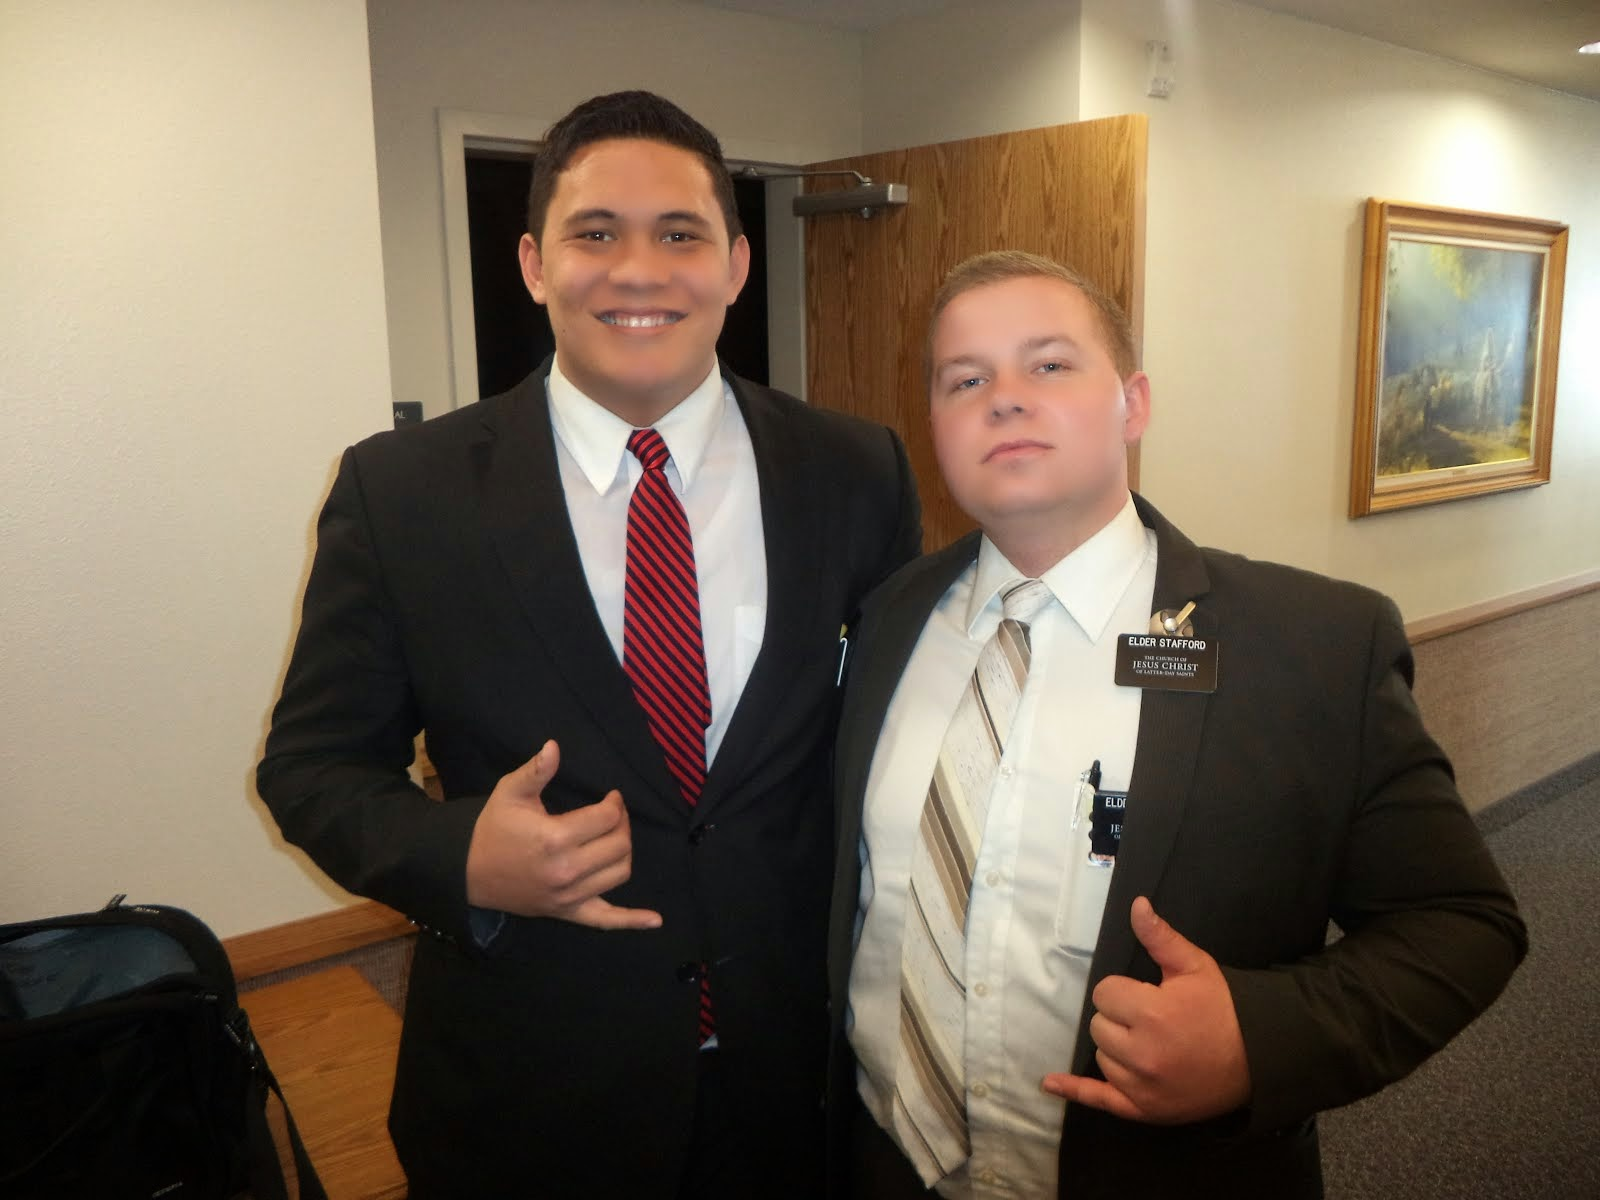 Me and Elder Stafford